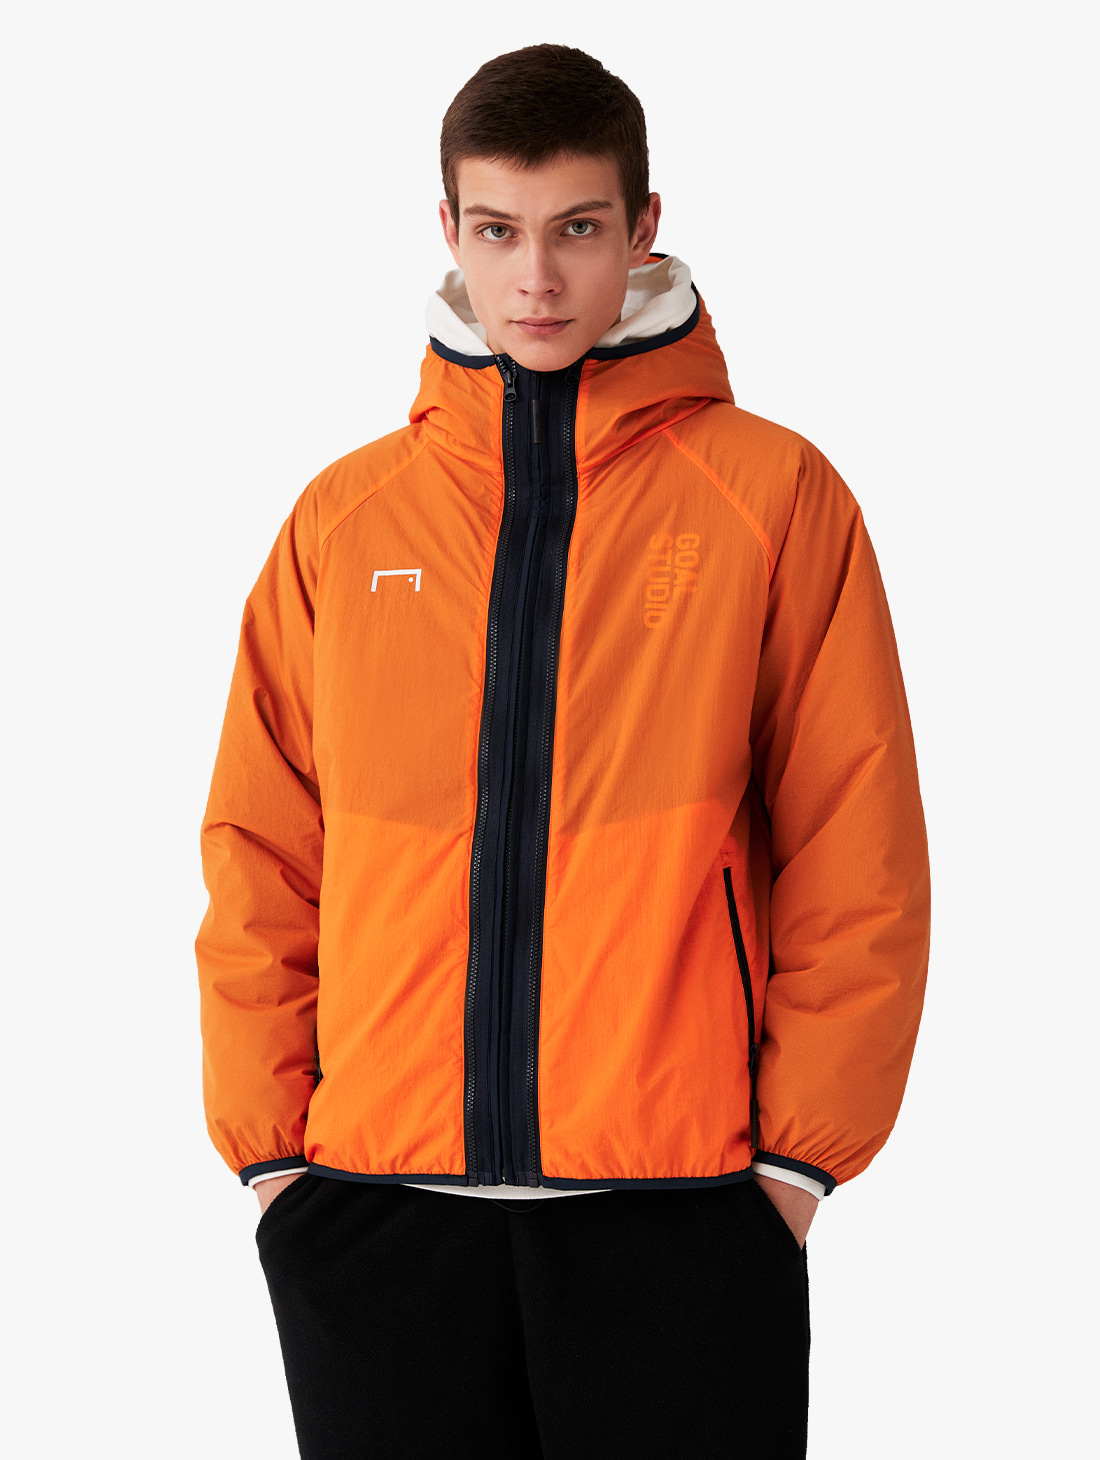 2IN1 THINSULATE JACKET - ORANGE/NAVY